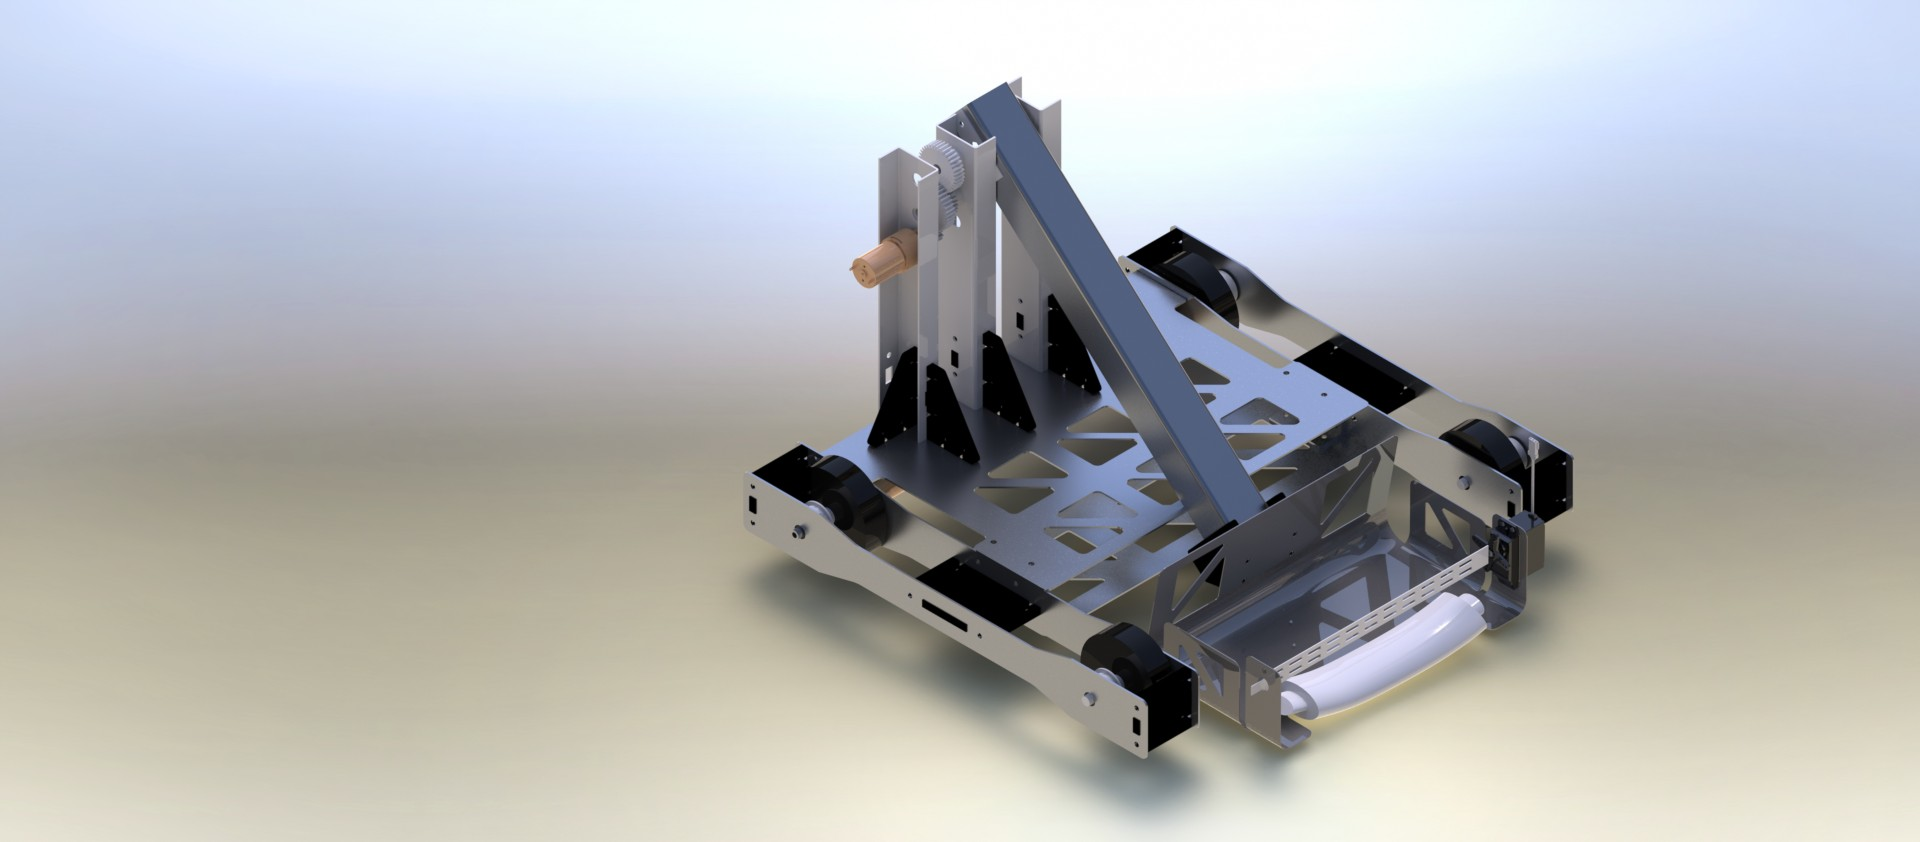 Final CAD Rendering: The CAD was used to minimize manufacturing time and ensure that the system could be assembled properly.